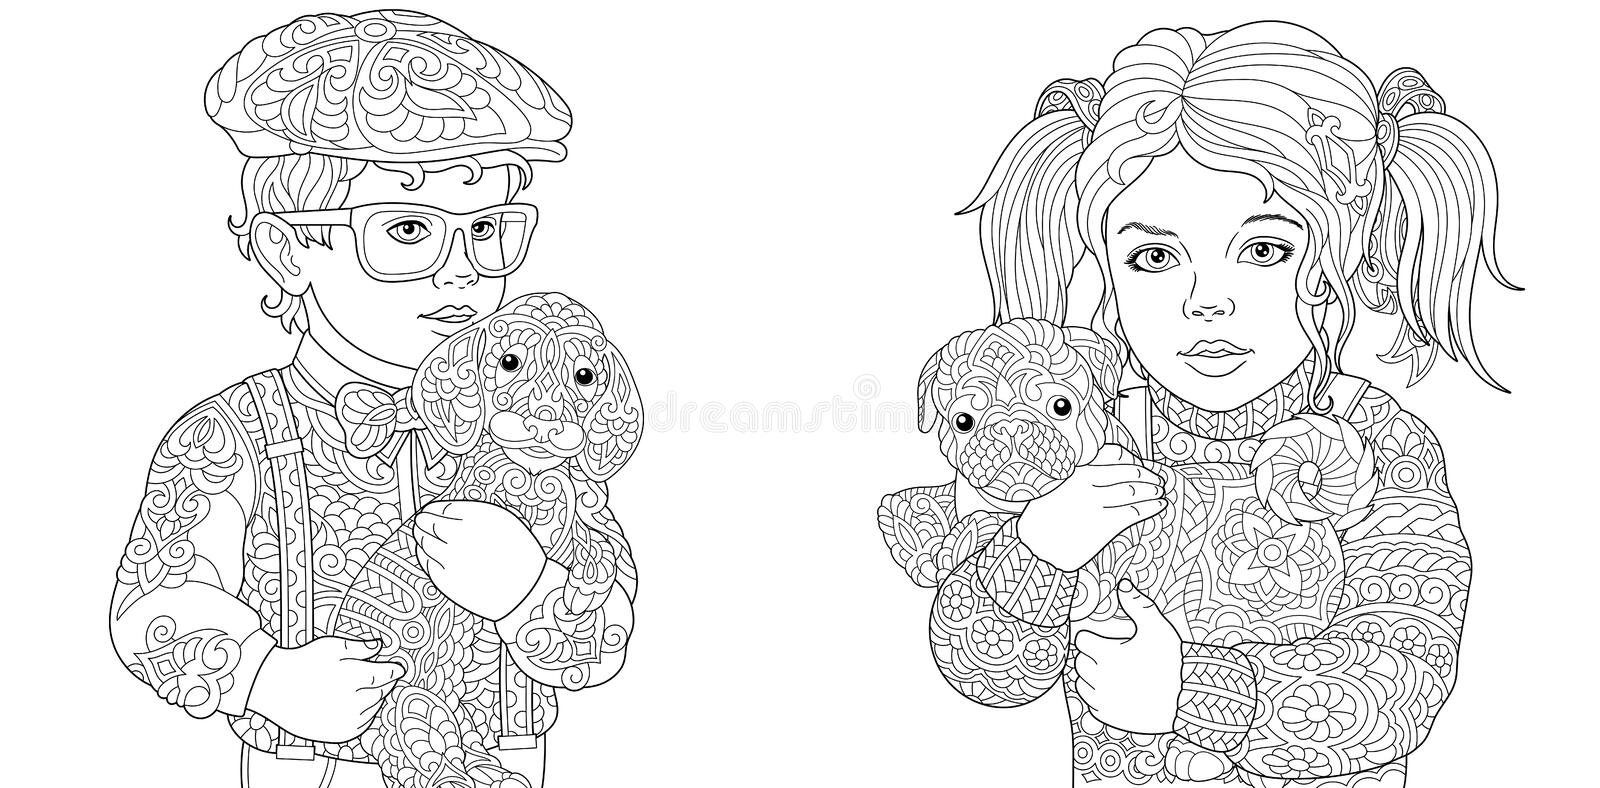 Kids. Coloring Pages. Coloring Book for adults. Colouring pictures with children holding dogs. drawn in zentangle style. Vector royalty free stock image